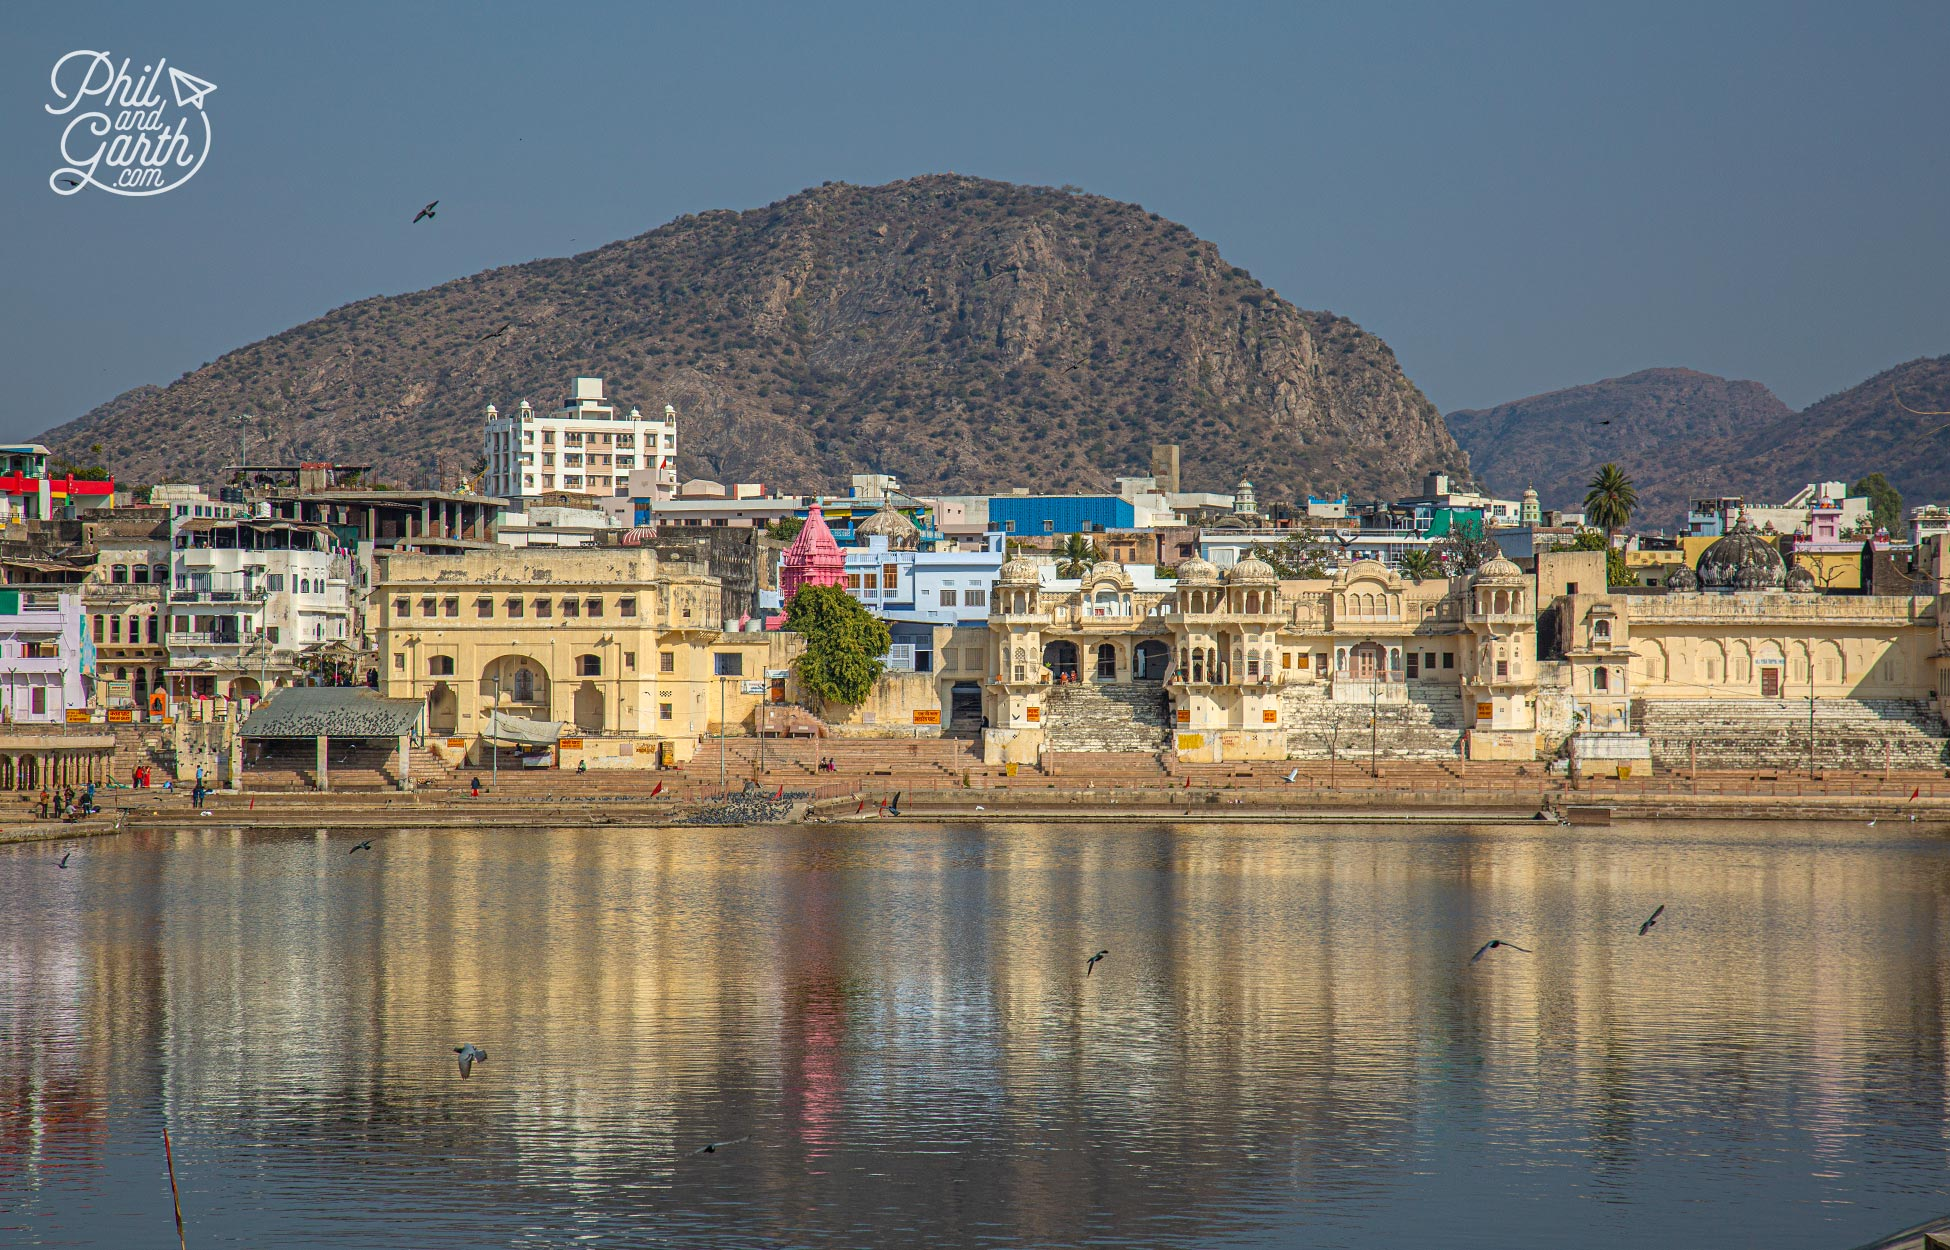 There's over 500 small temples surrounding Pushkar Lake. Some made of white marble or painted blue